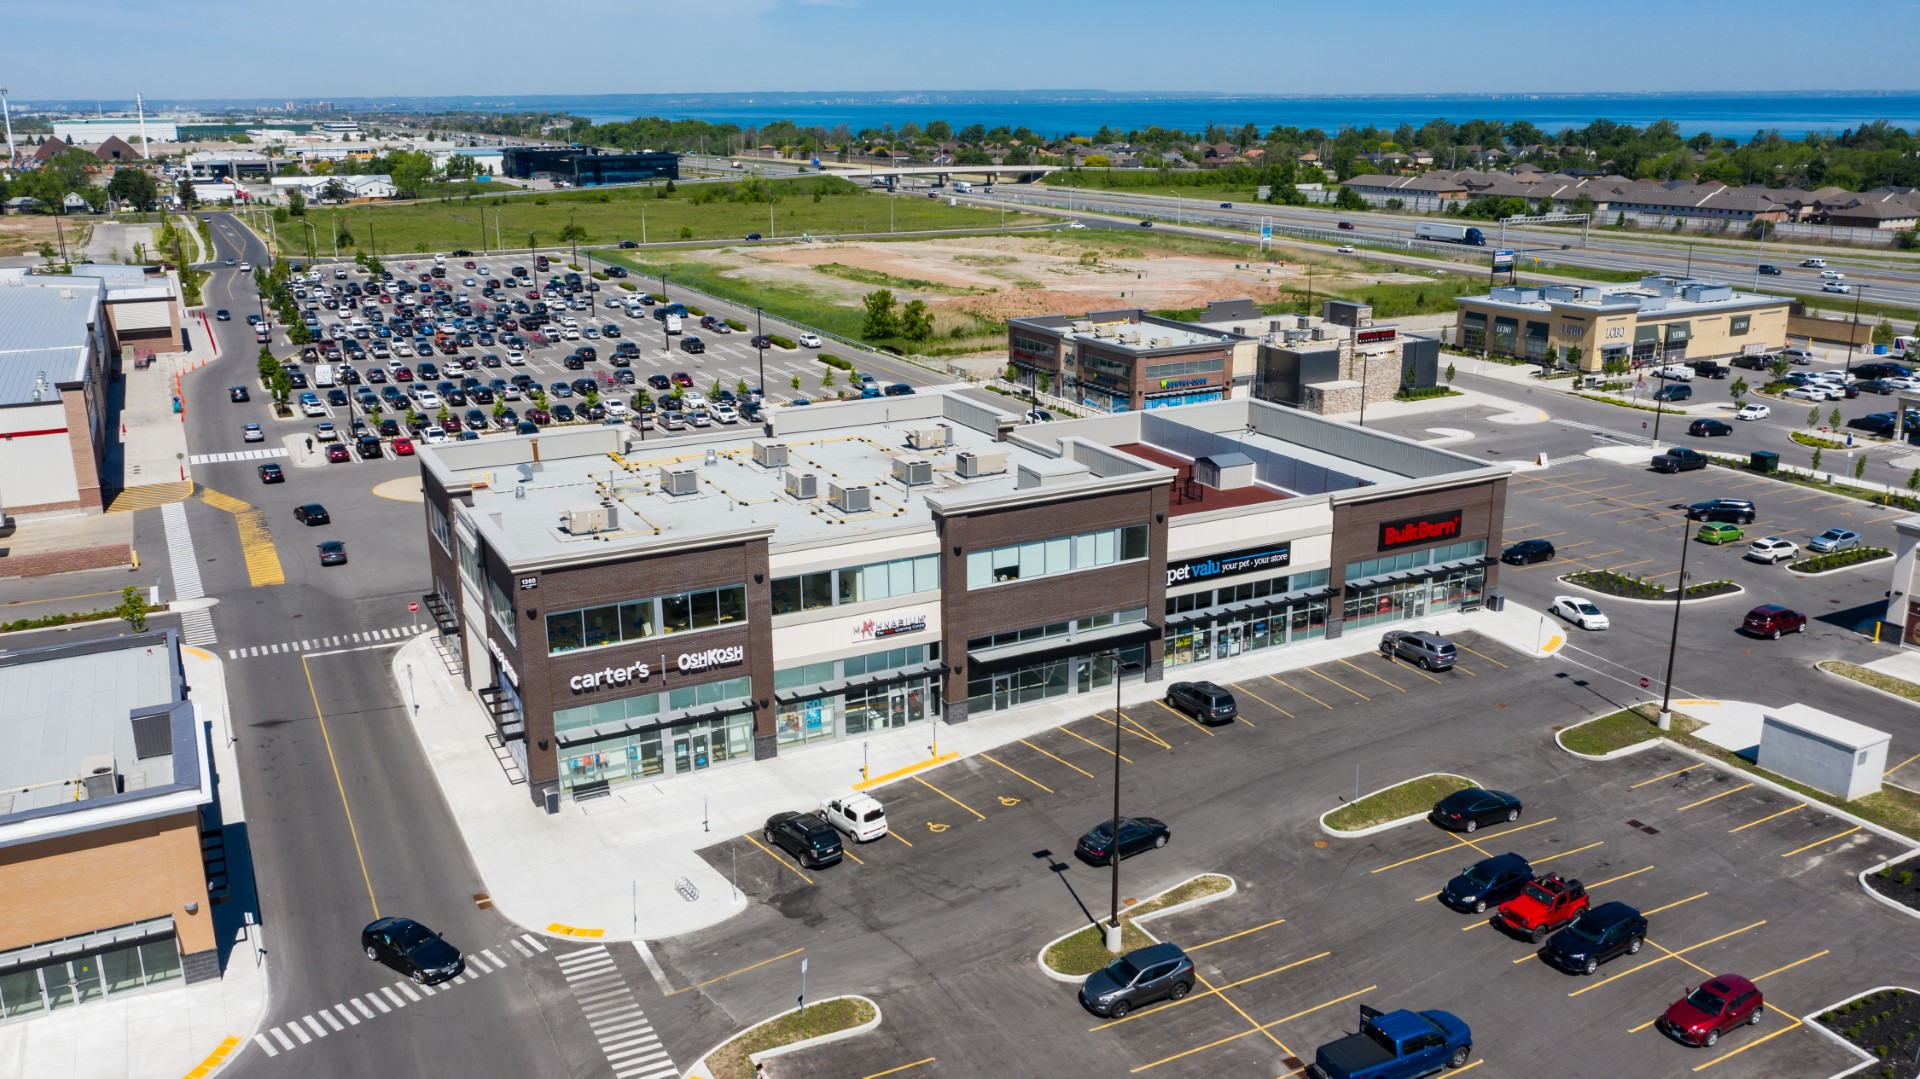 Drone image of a commercial building